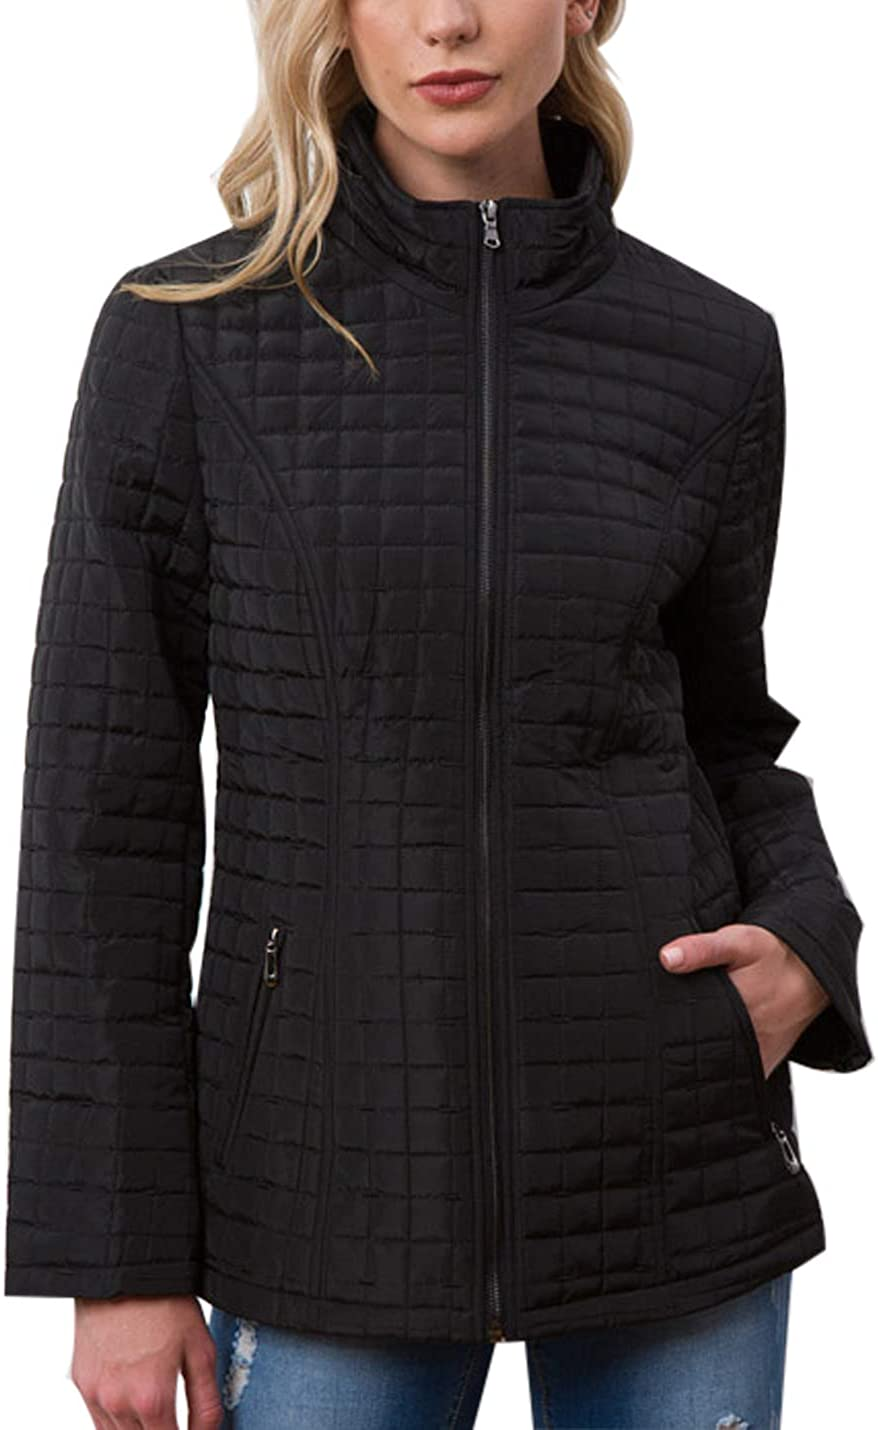 Jenkoon Women's Casual Loose Stand Collar Plaid Winter Quilted Jacket Overcoat Tops